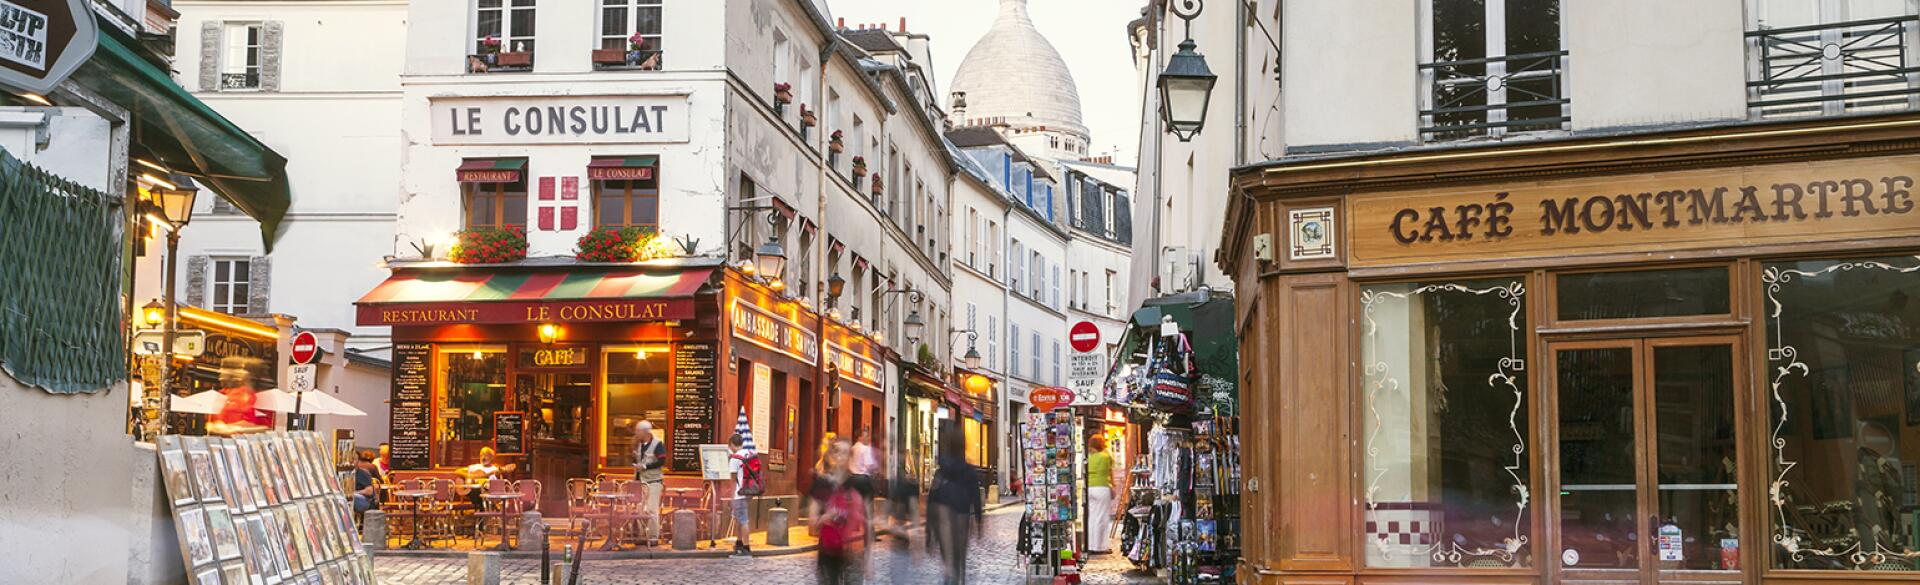 Photo of the streets of downtown Paris France